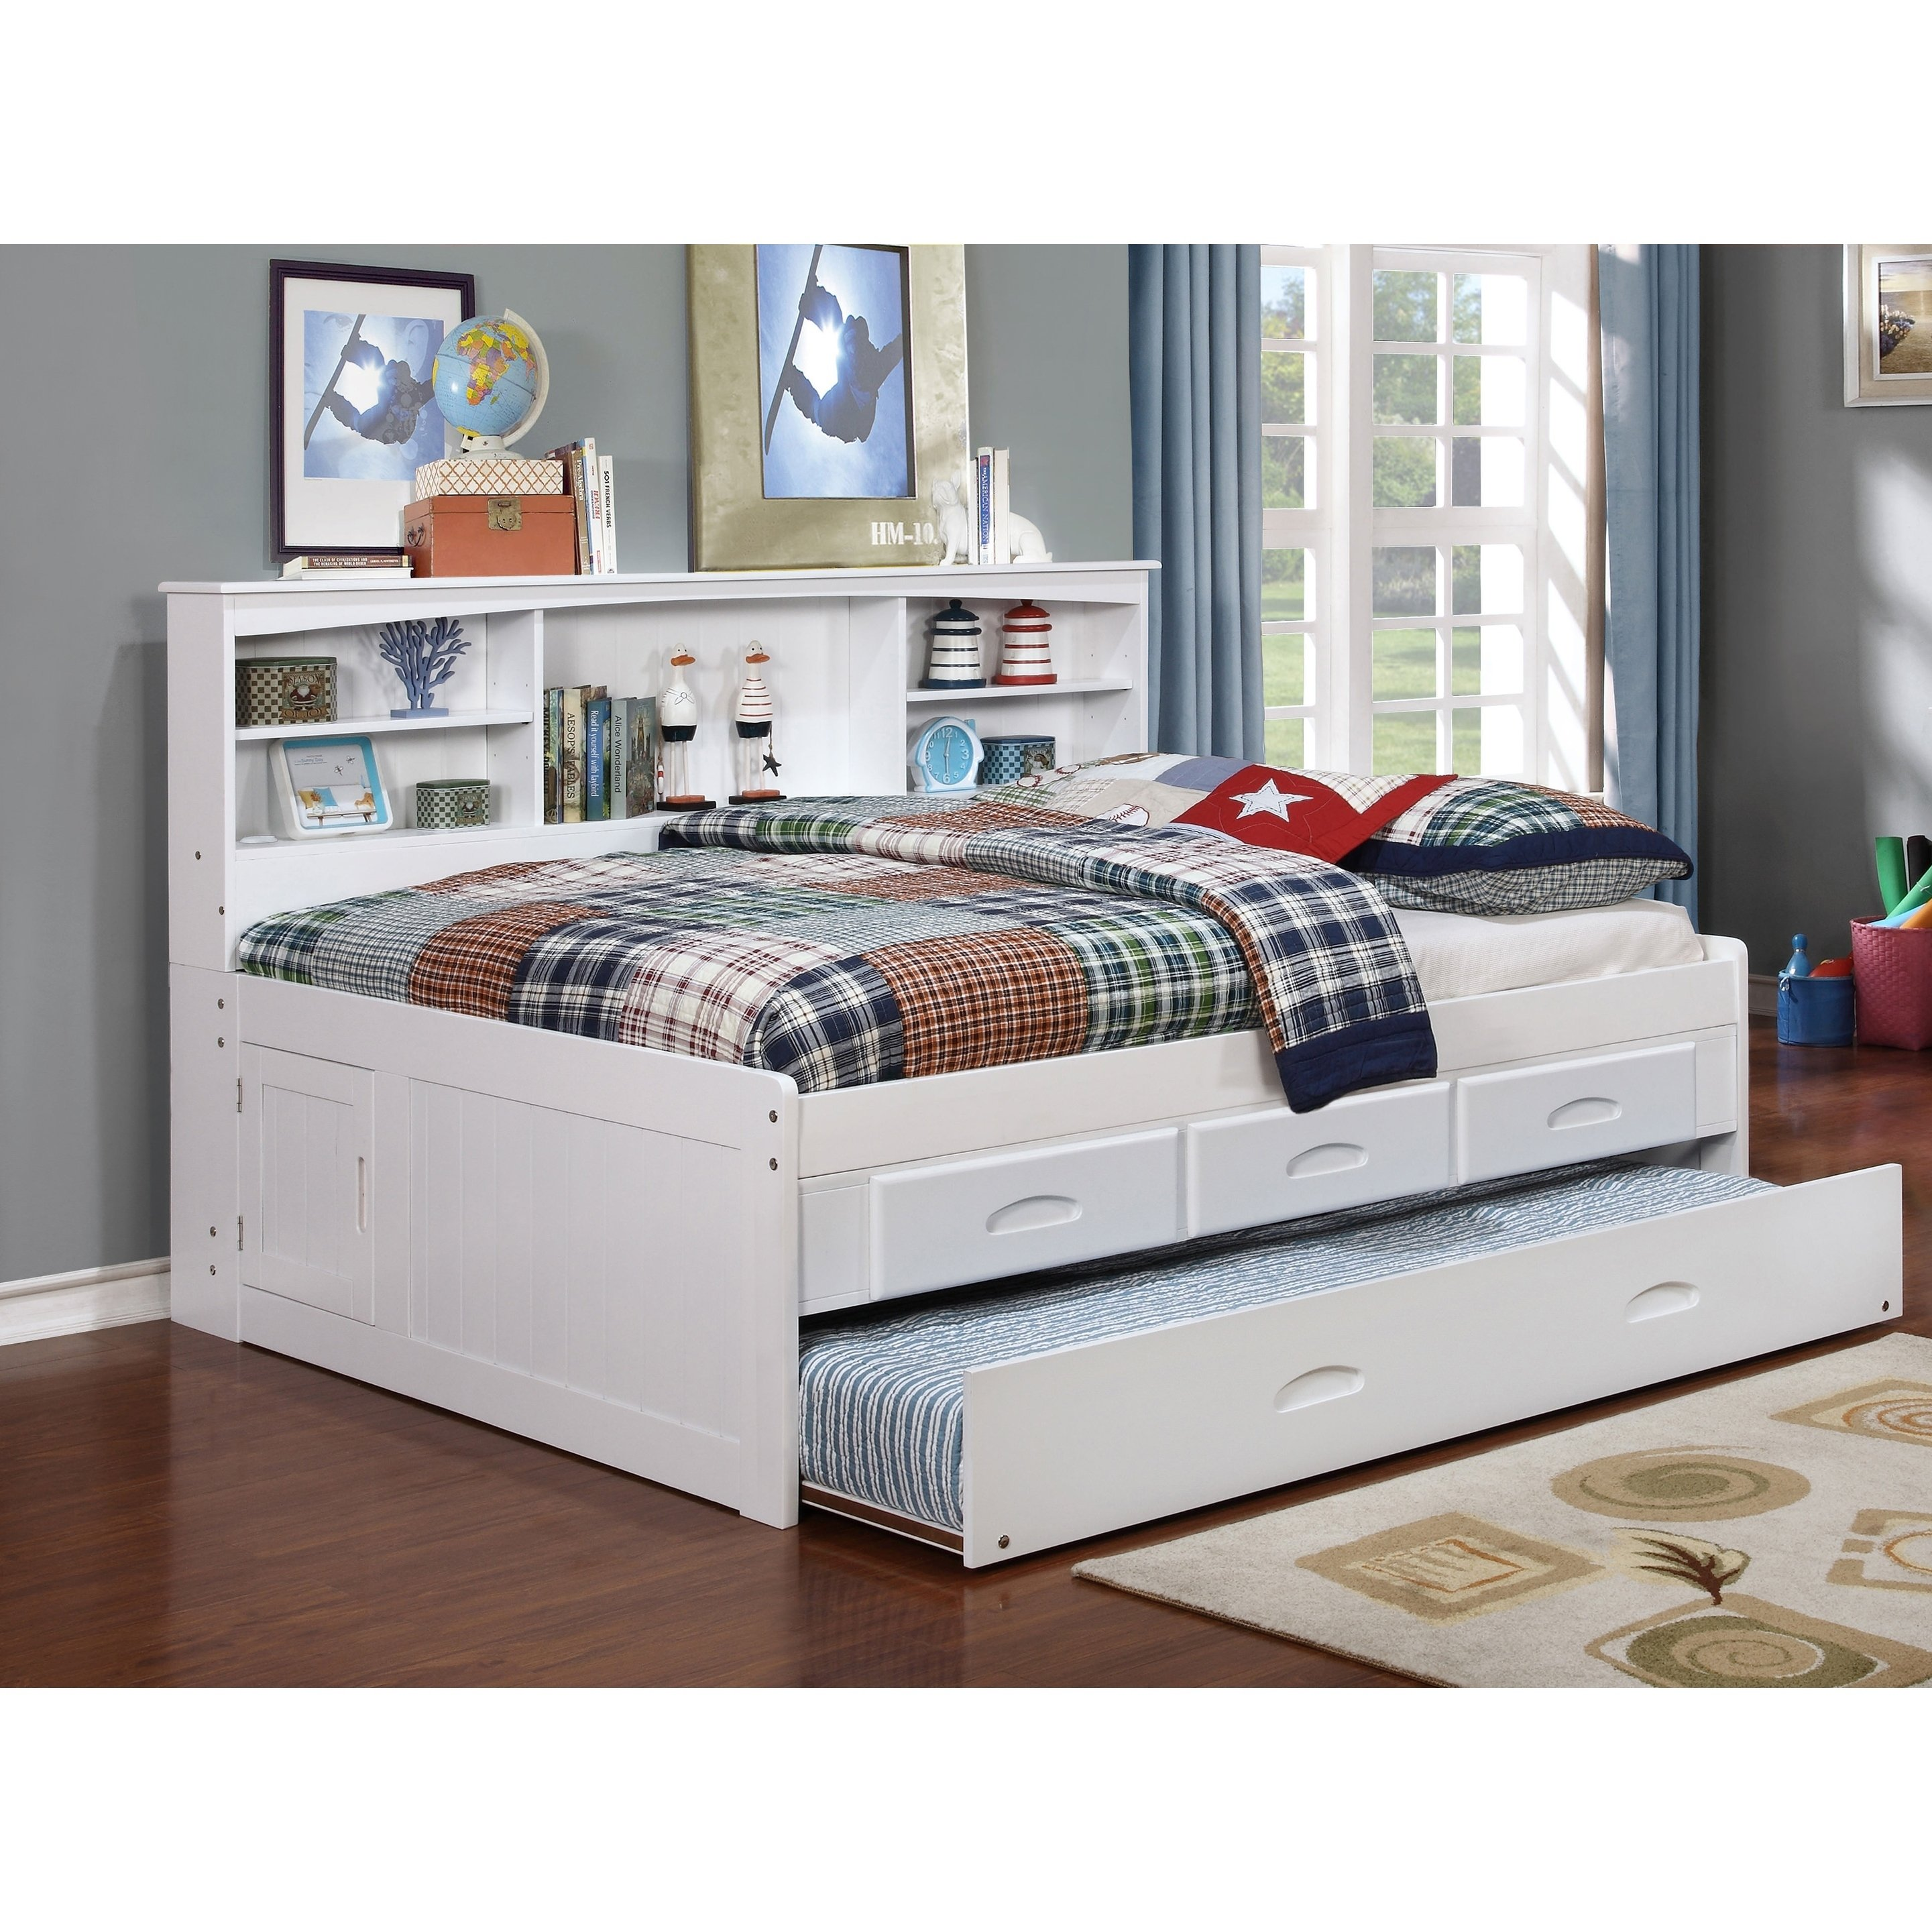 American Furniture Classics Model 0223 K3 Solid Pine Full Daybed